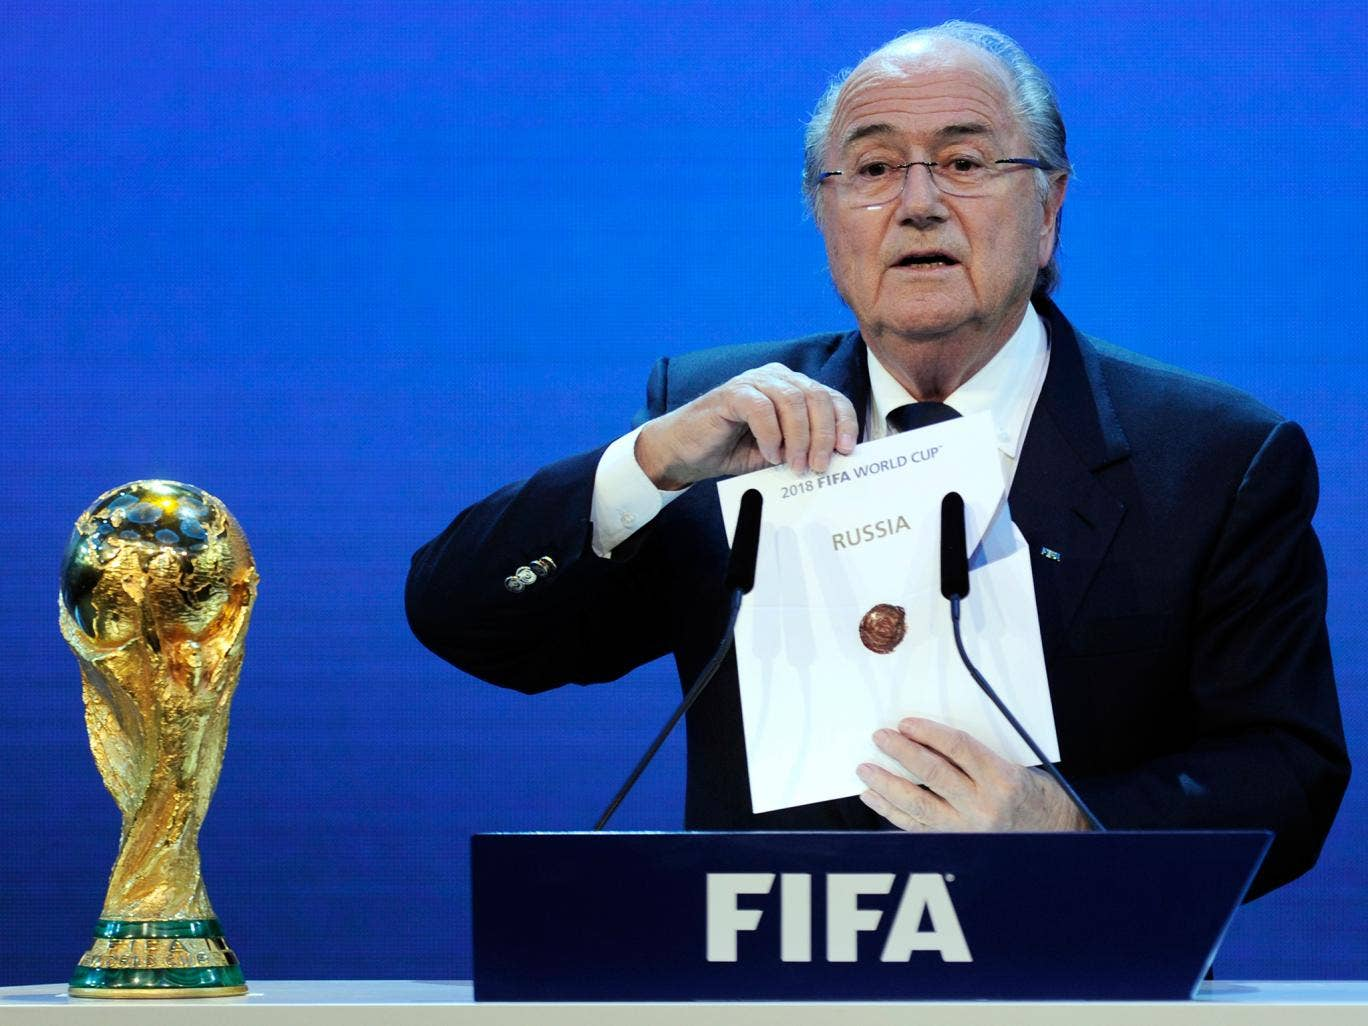 Sepp Blatter reveals Russia as the hosts of the 2018 tournament